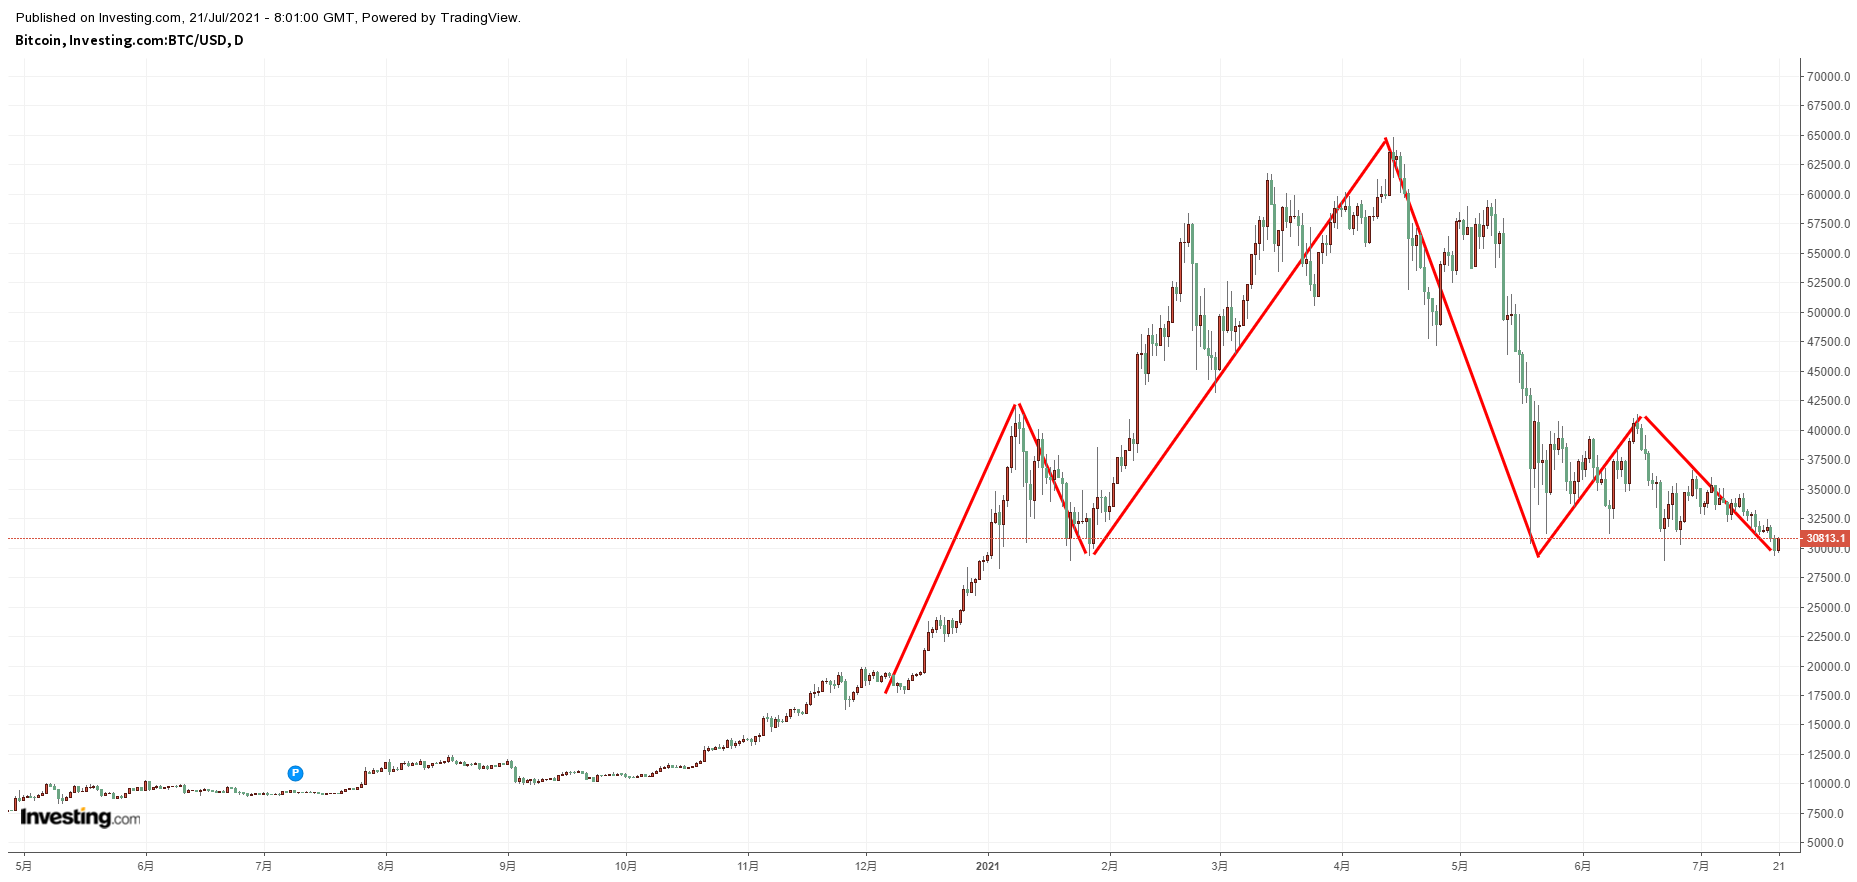 Bitcoin daily chart, source: Investing.com